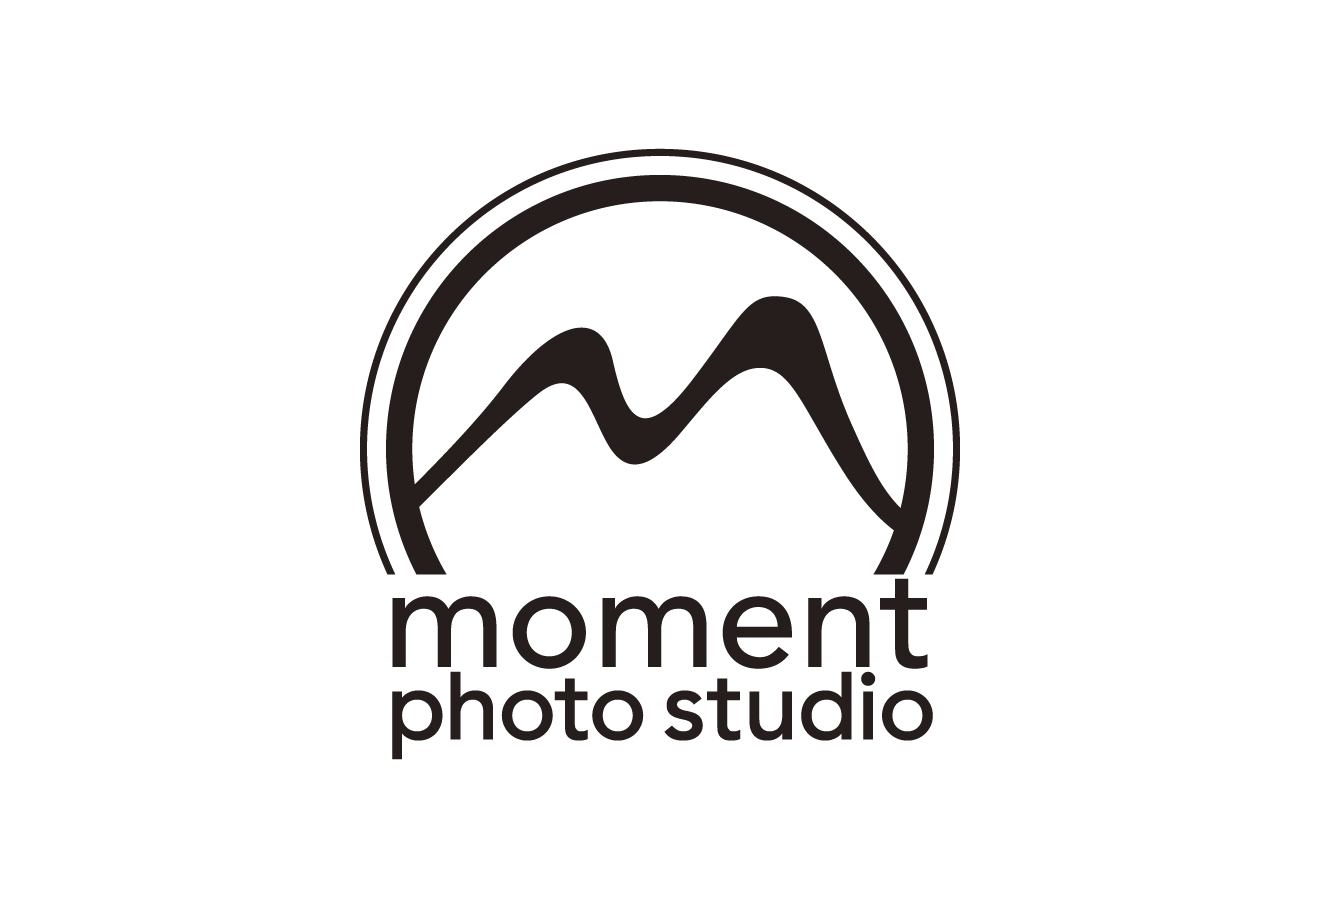 moment photo studio